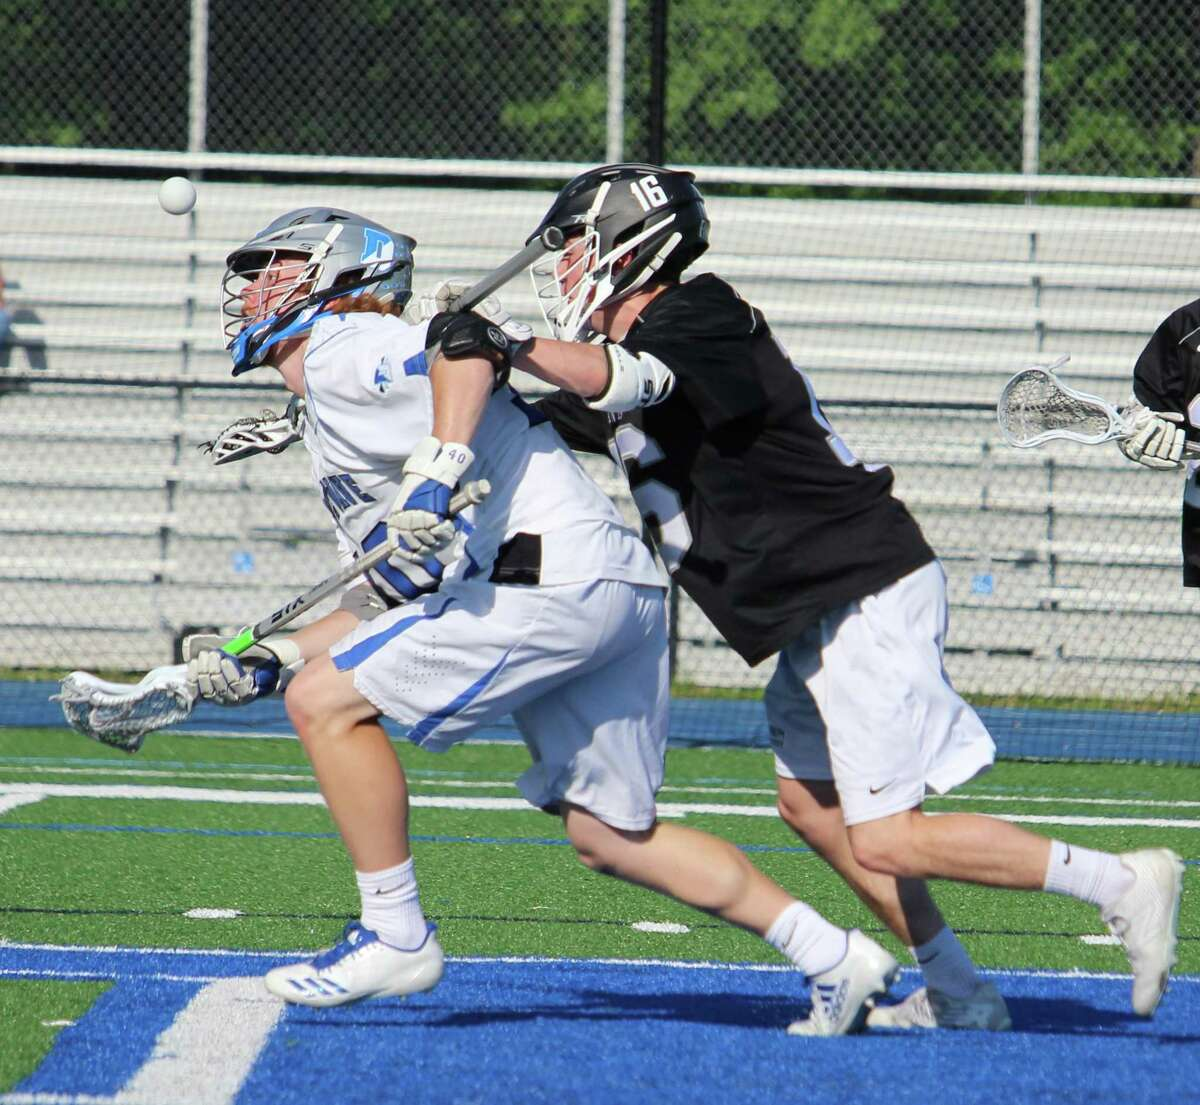 The NFHS has voted to continue a rule implemented last year that changes how faceoffs take place in high school boys lacrosse.